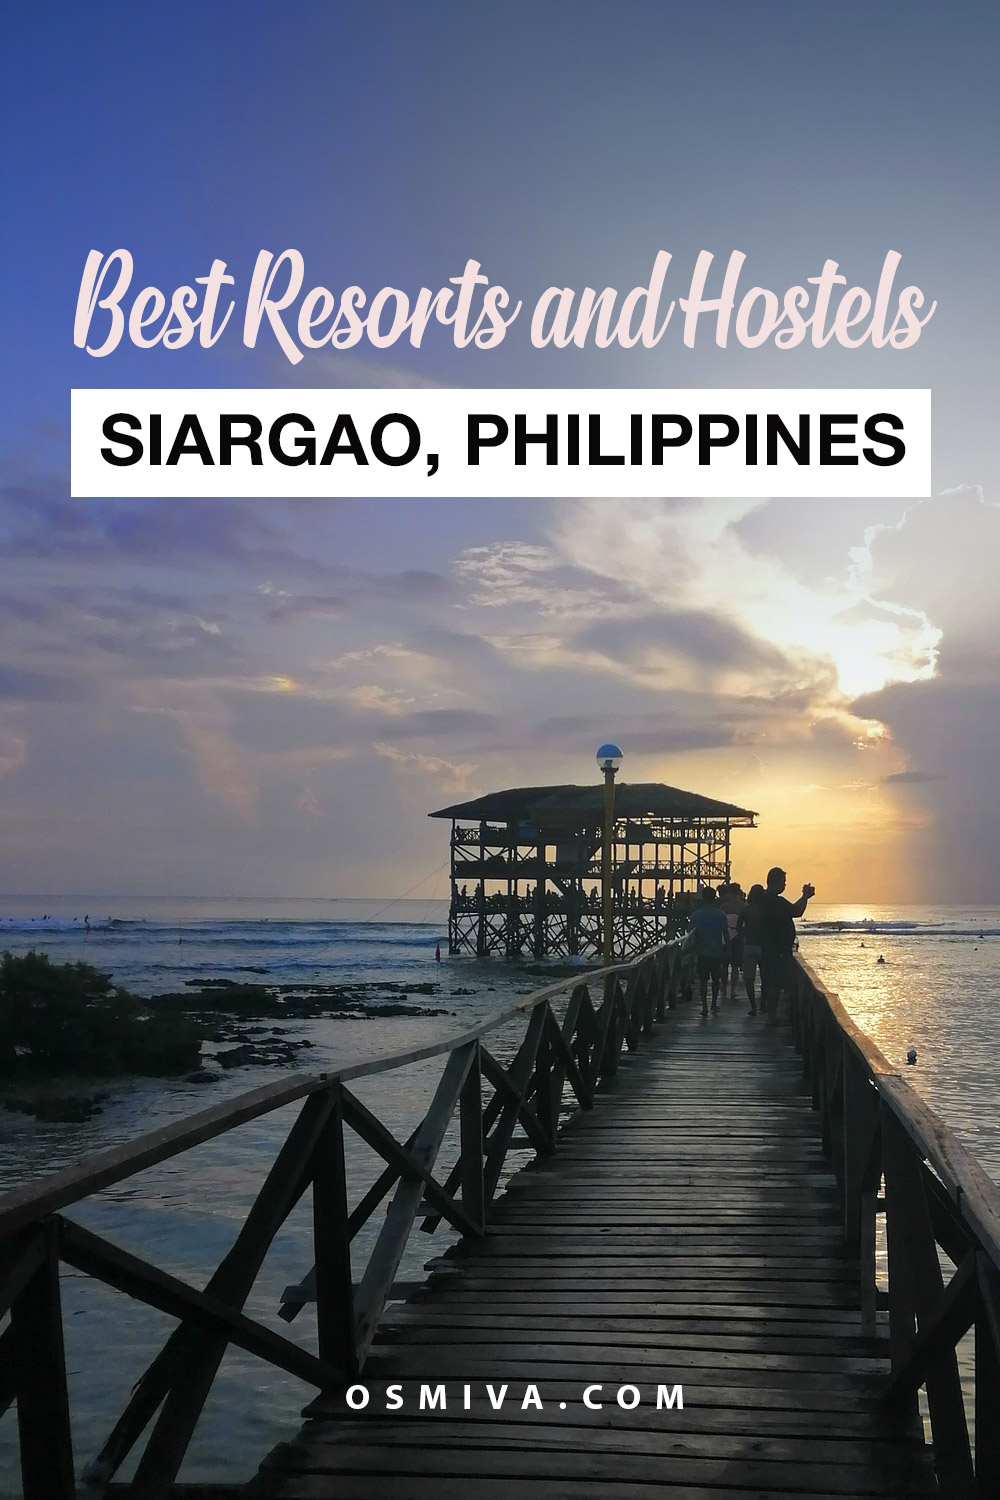 Best Siargao Resorts and Hostels For An Extraordinary Vacation. Best places to stay when in Siargao, Philippines. #beachvacation #philippinesisland